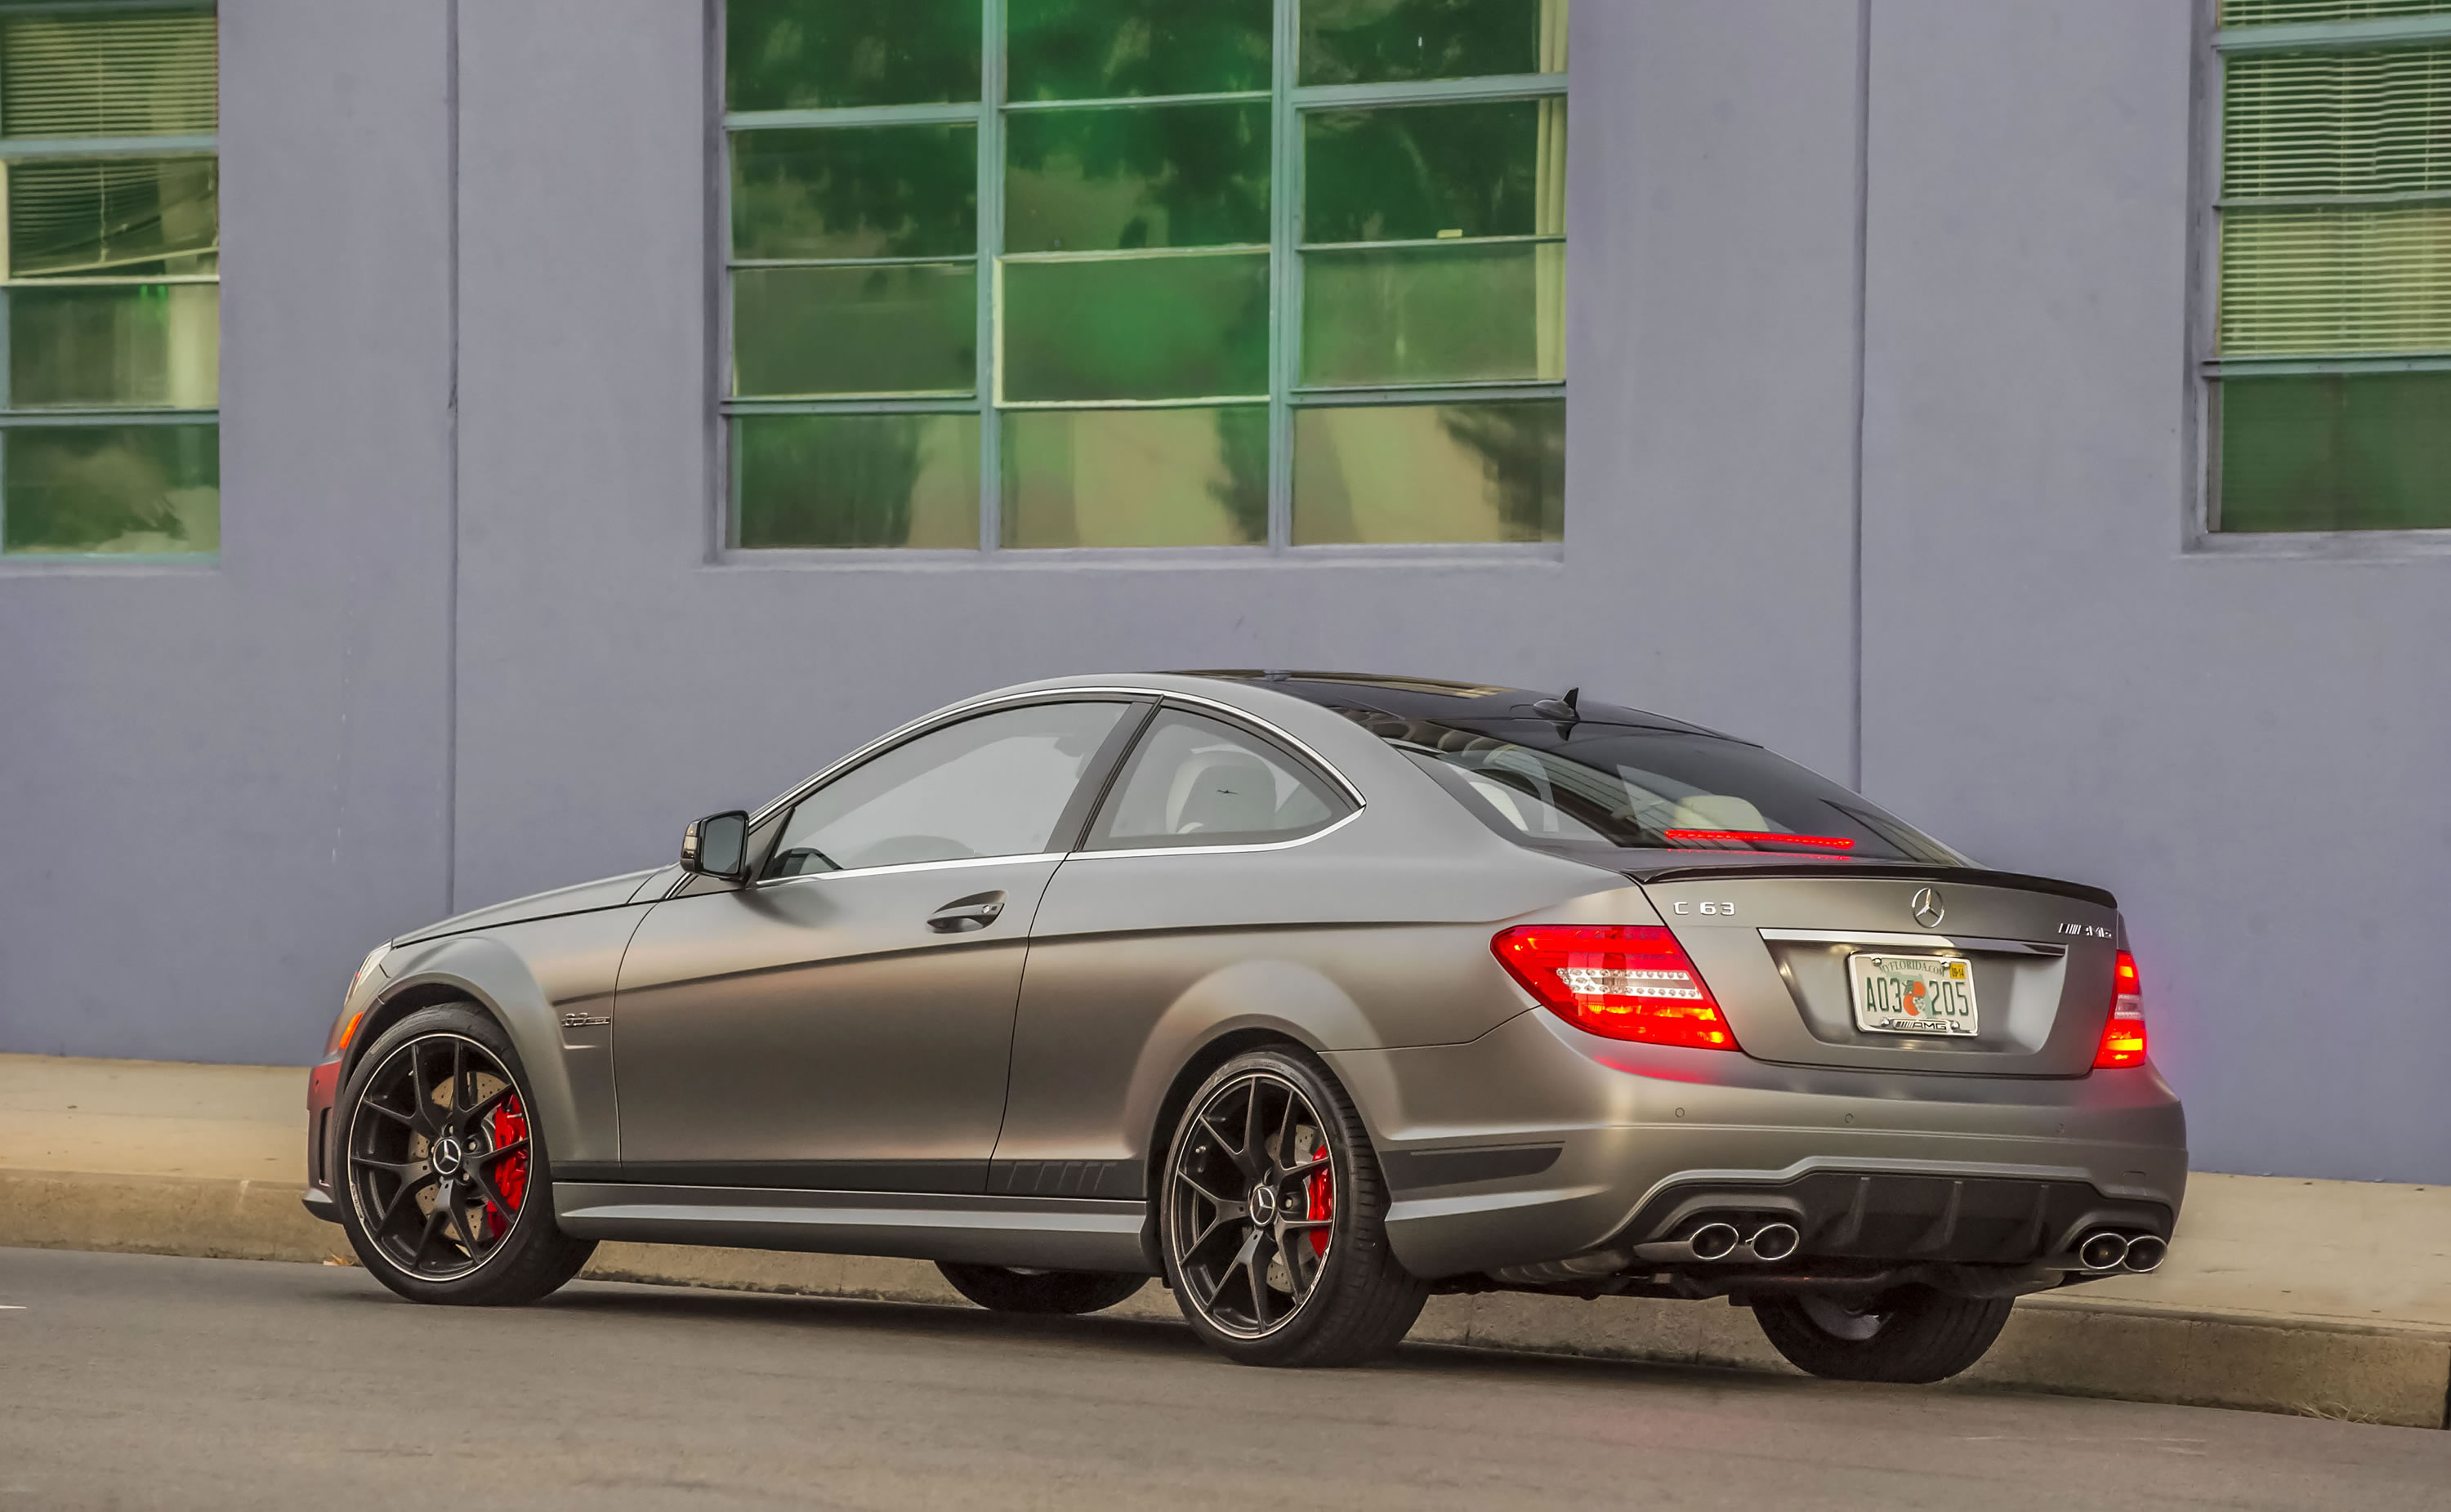 2014 mercedes benz c63 amg coupe edition 507 photos specs for 2014 mercedes benz c63 amg edition 507 for sale